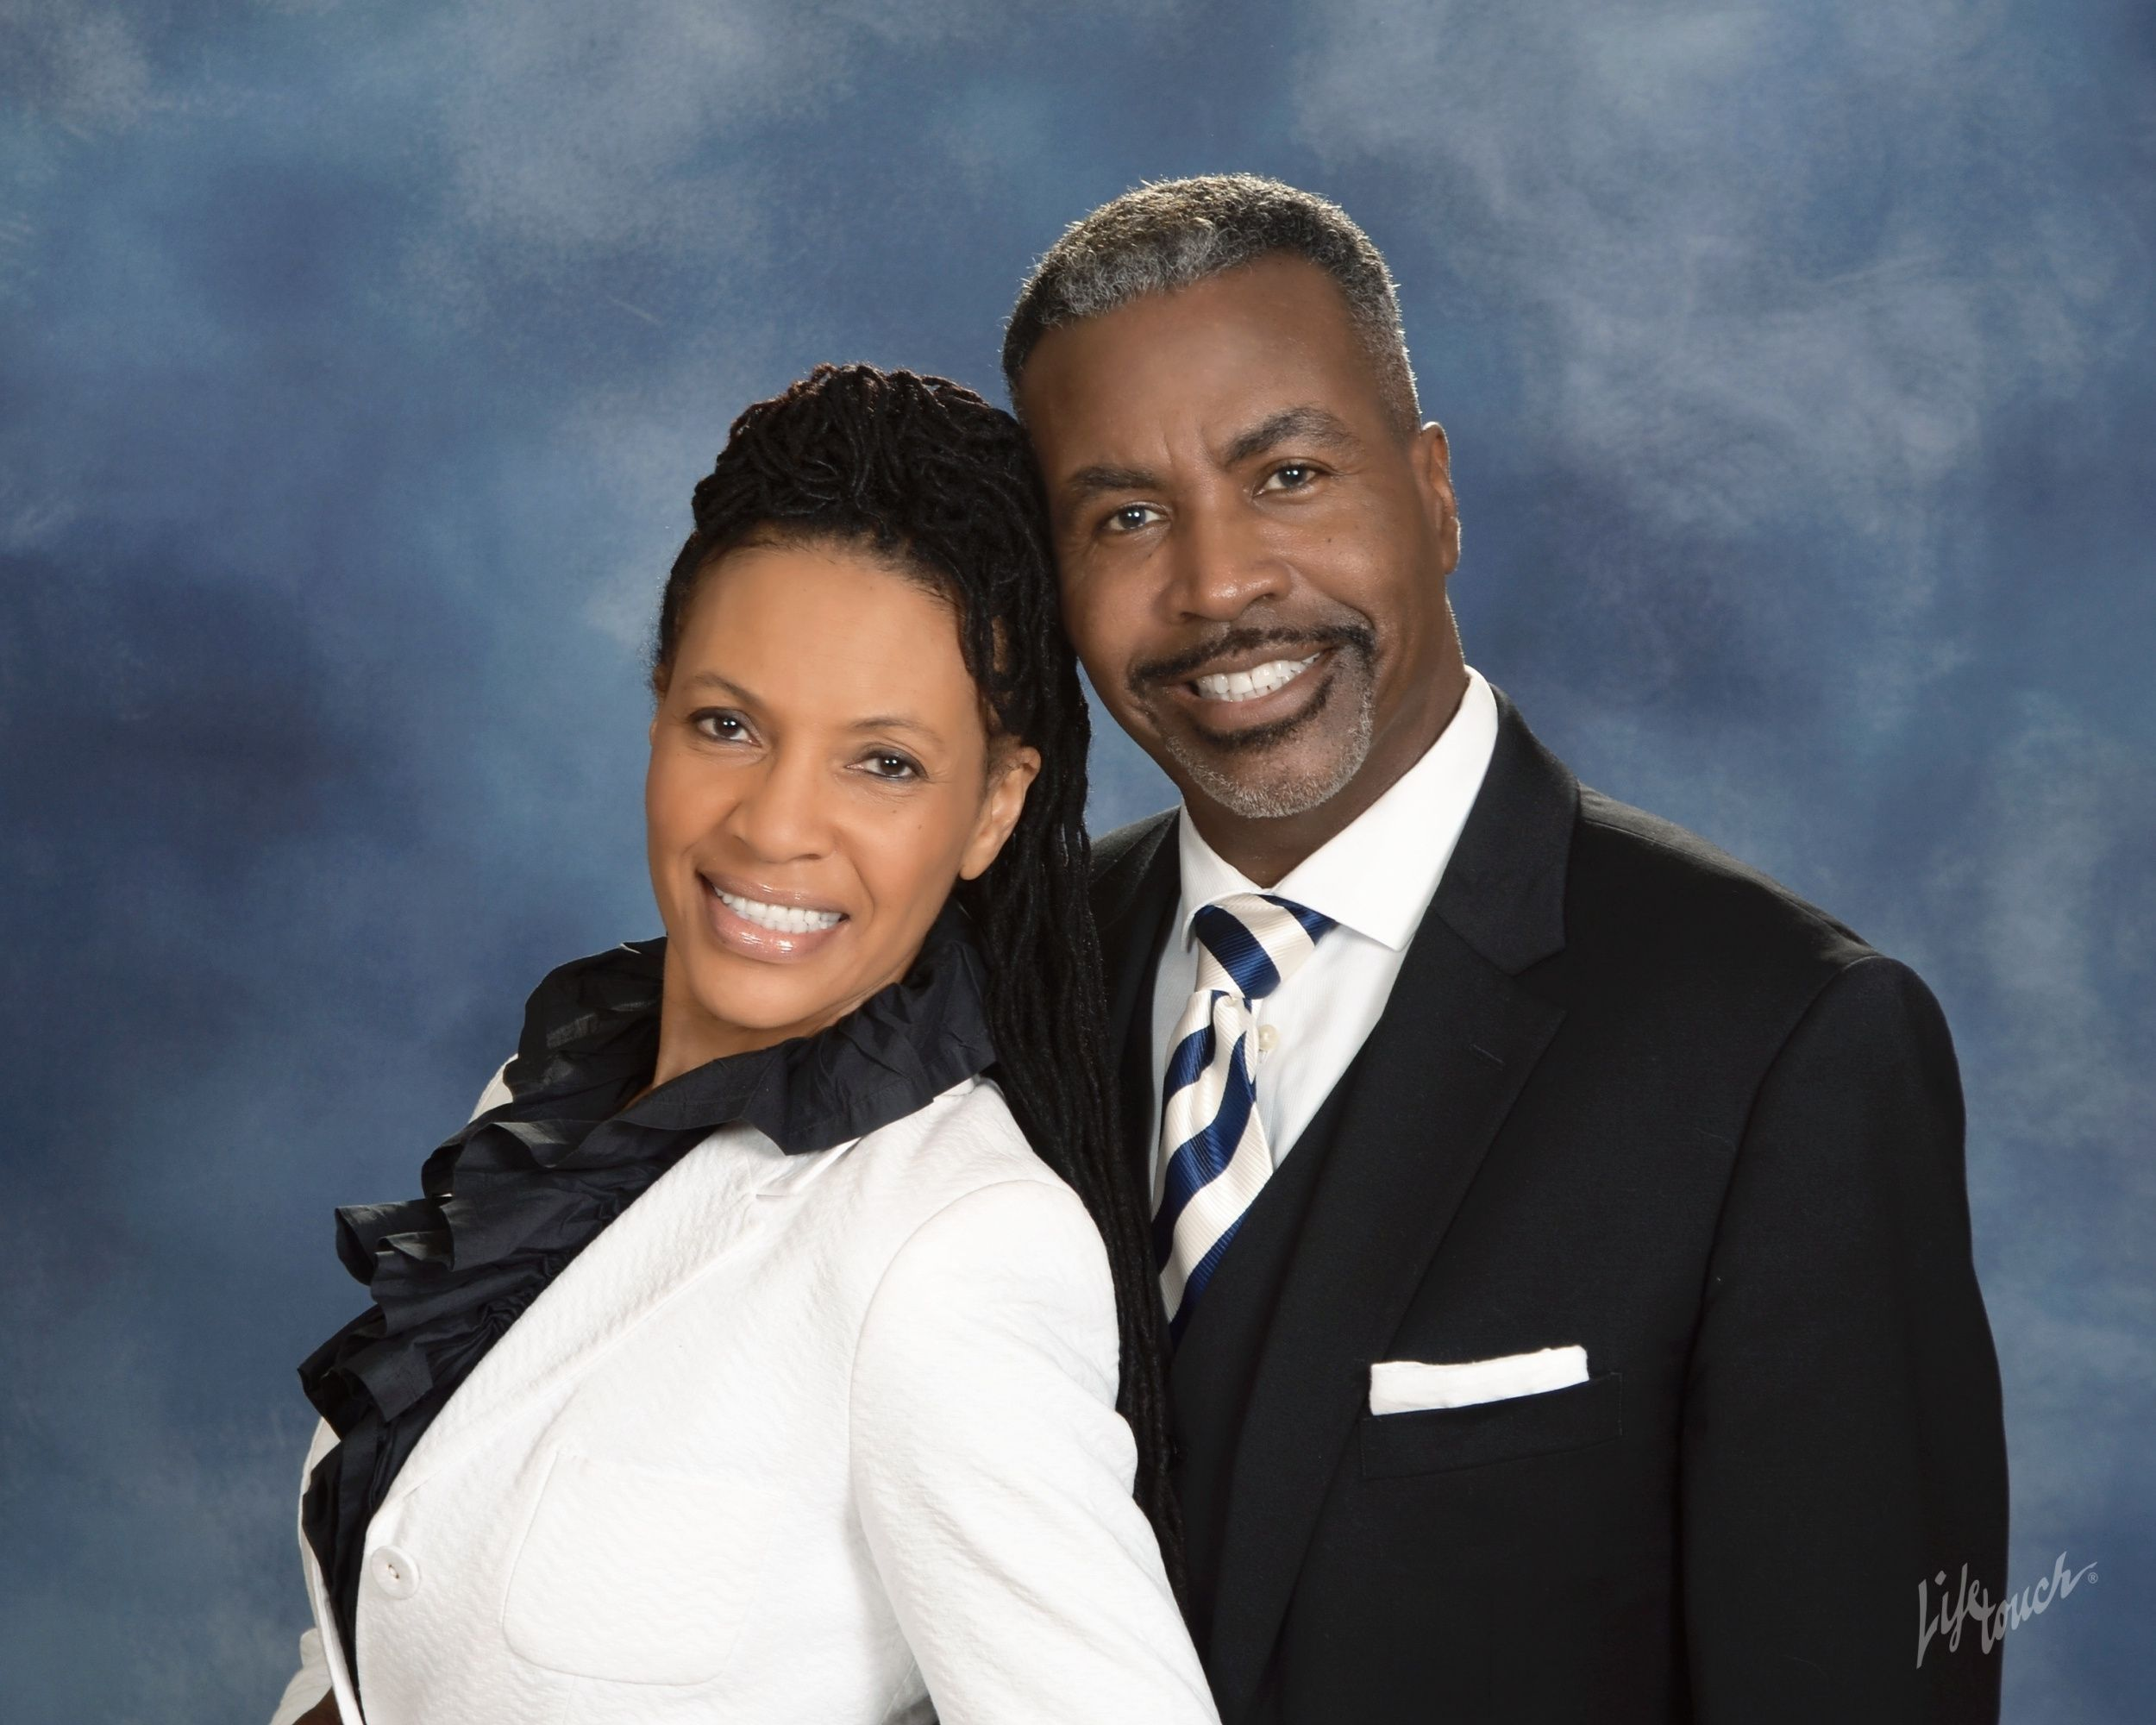 Marriage Counseling A Resource To Help Improve Your Life